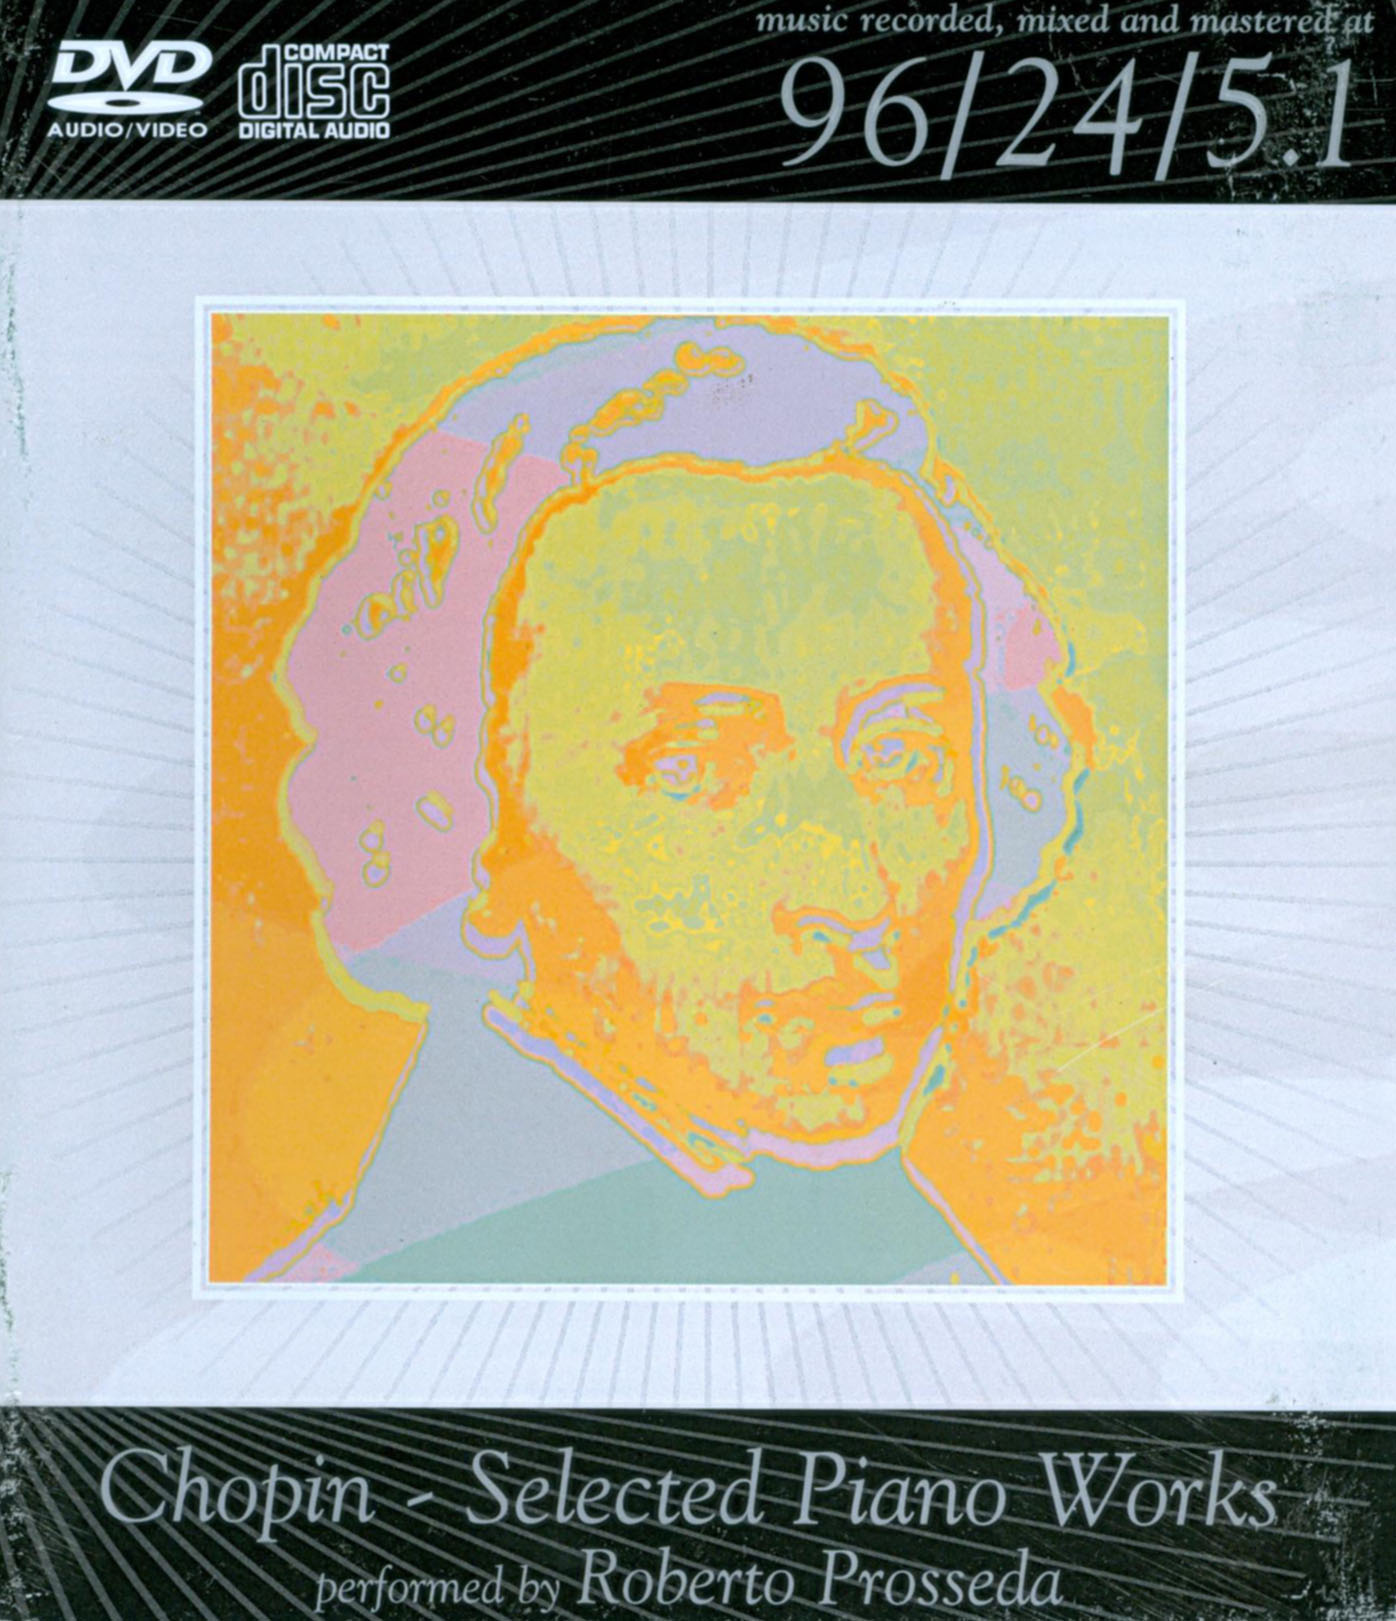 Roberto Prosseda: Chopin - Selected Piano Works